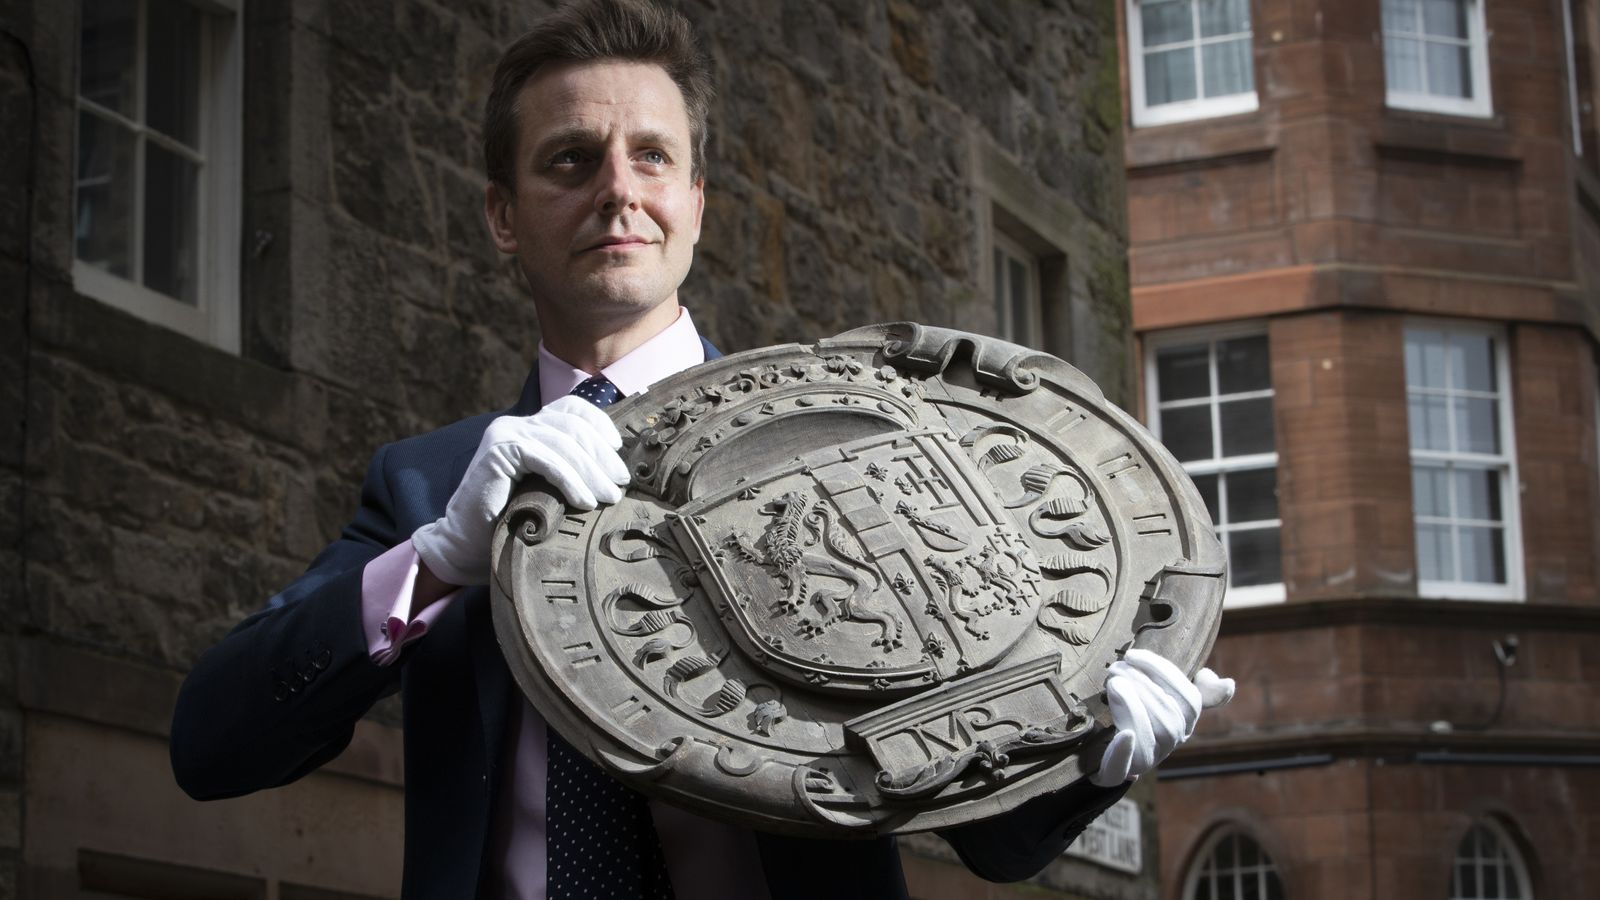 The discovery of the Scottish castle has unearthed £ 700 million in UK News treasures